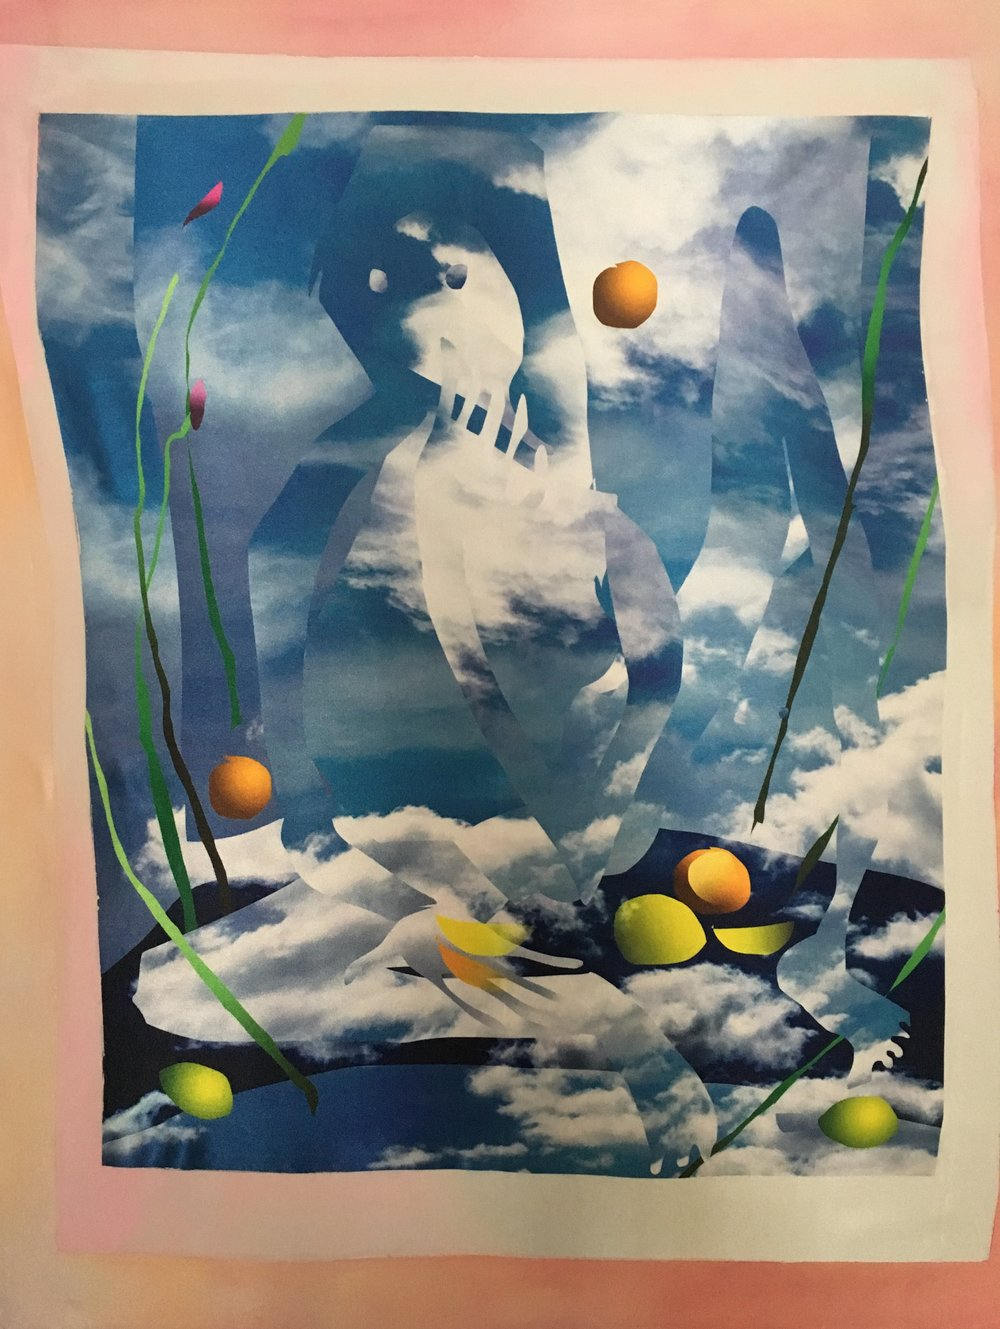 Rosalind Breen,  Picnic , 2017, Digital collage printed on silk with acrylic, 20 x 30 inches